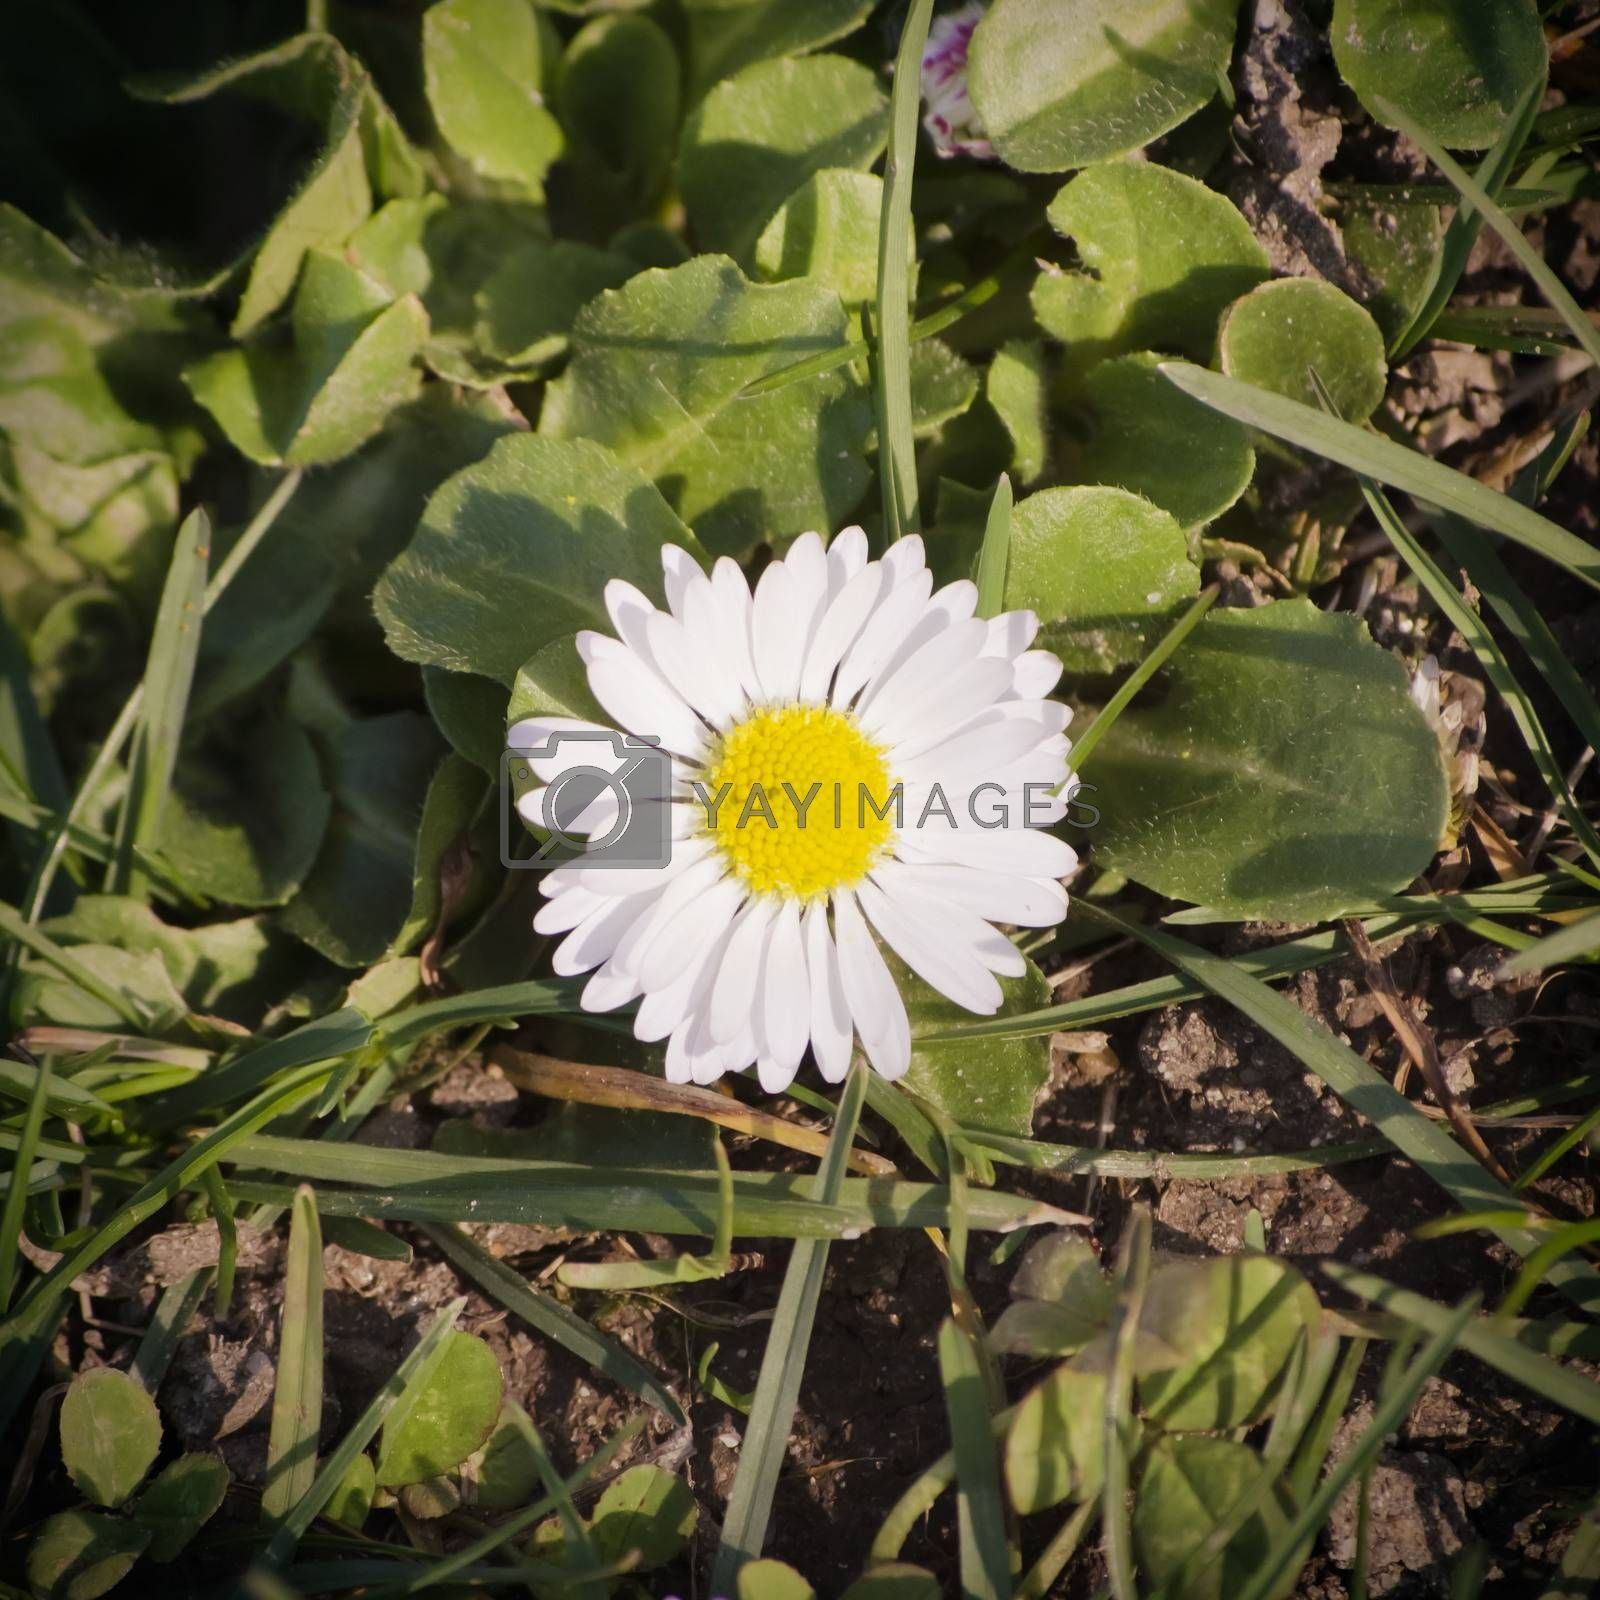 White Daisy Over Green Grass Background